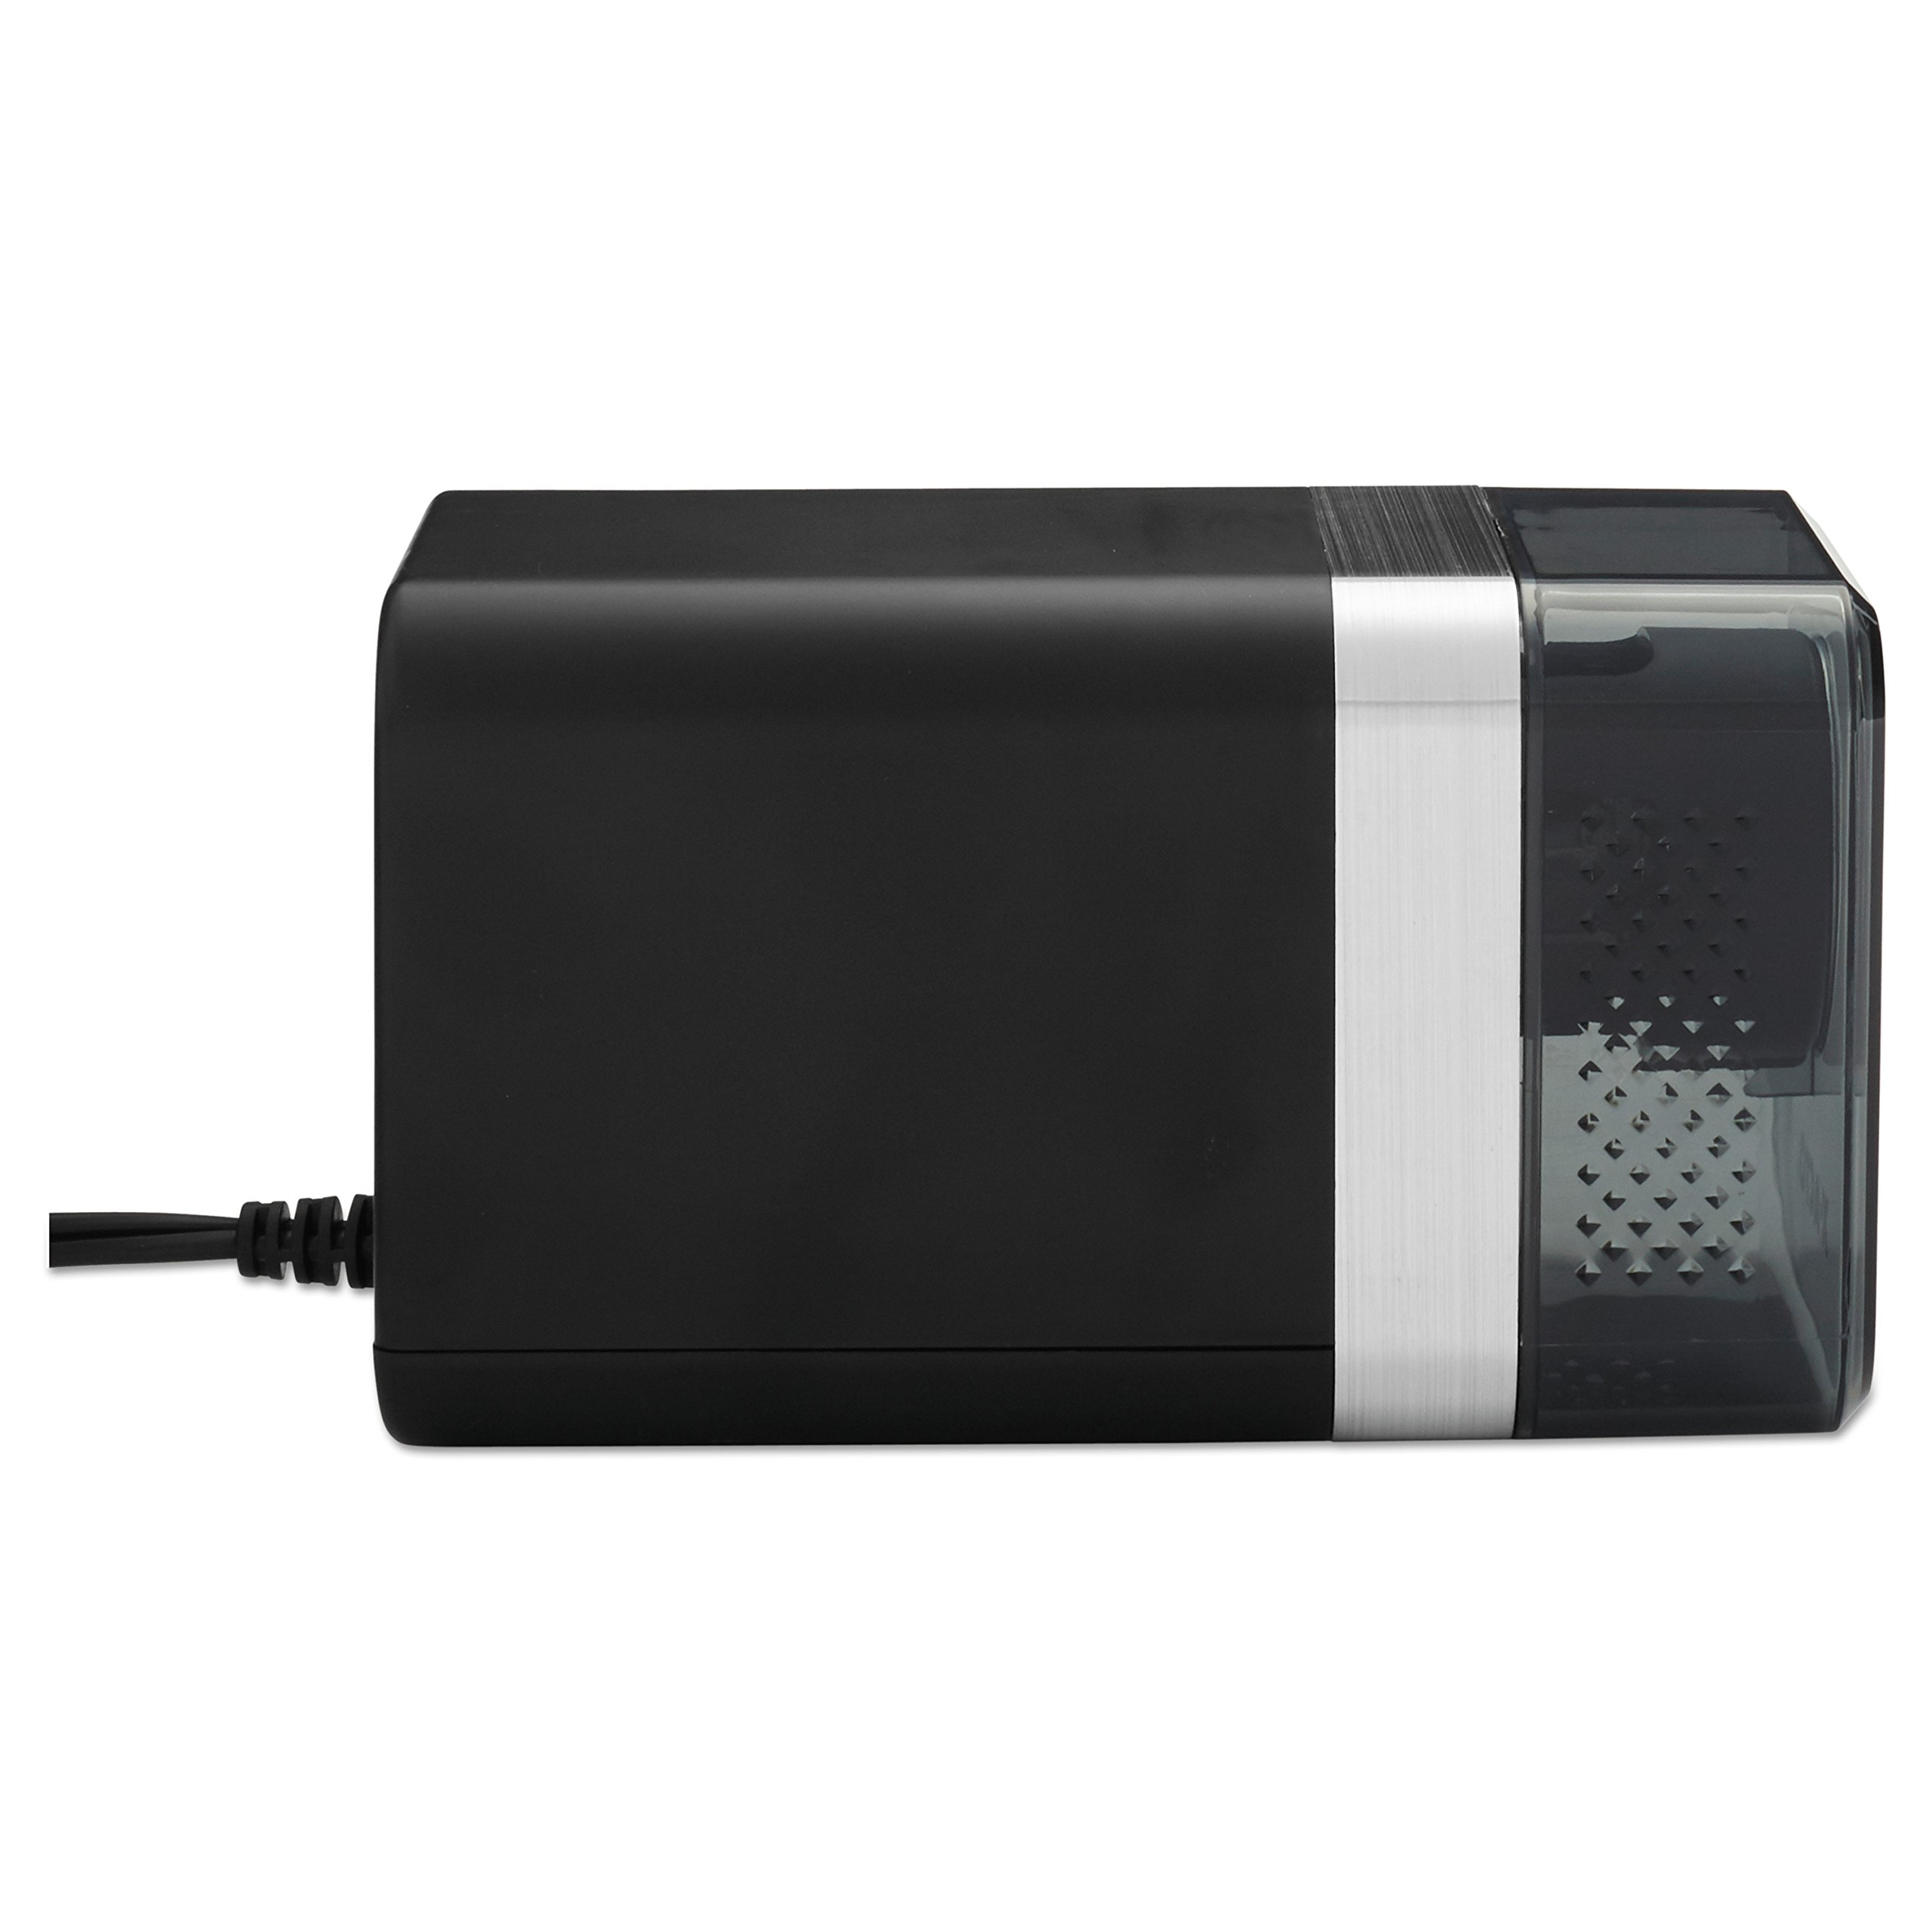 X-ACTO 1744 Power3 Office Electric Pencil Sharpener, Black by X-Acto (Image #3)